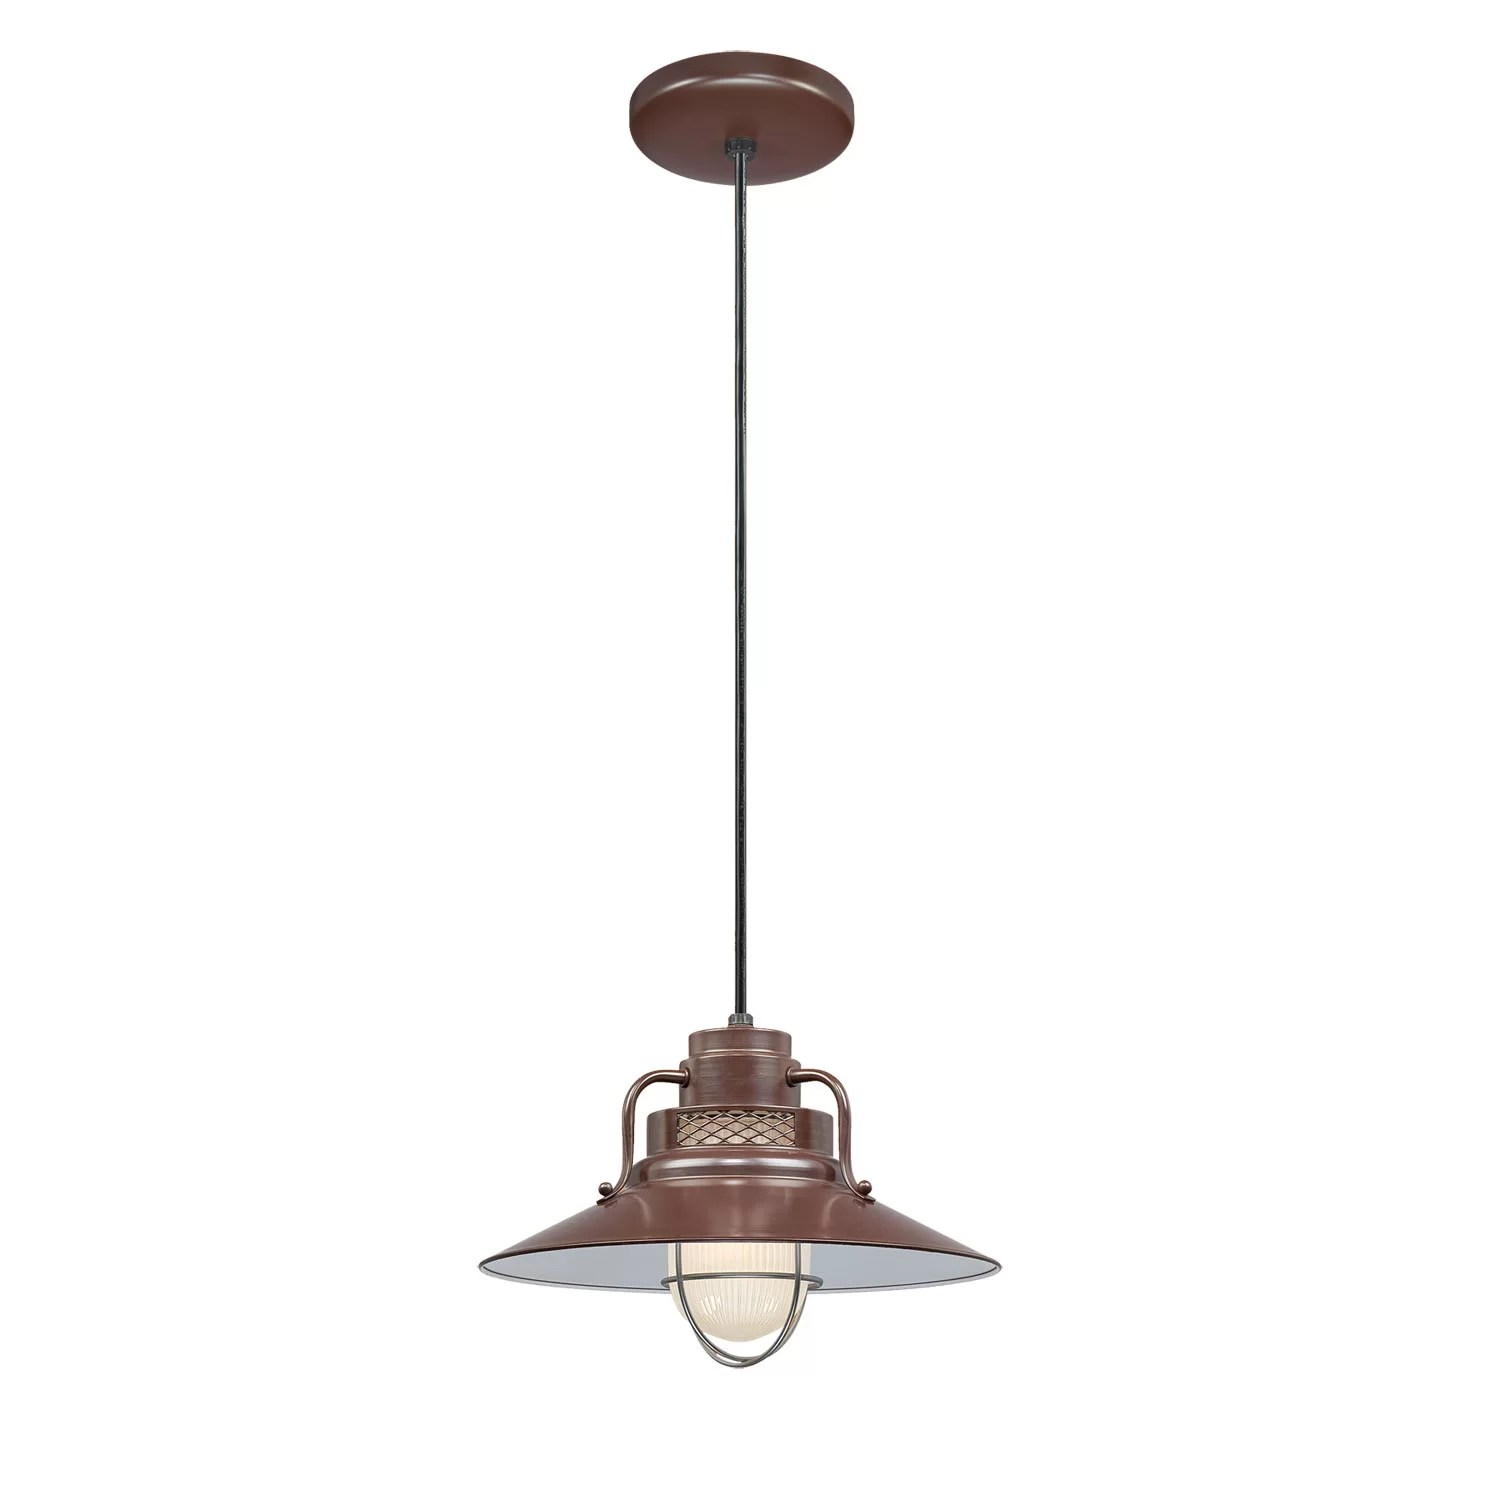 Pendant Island Lights Millennium Lighting R Series 1 Light Kitchen Island